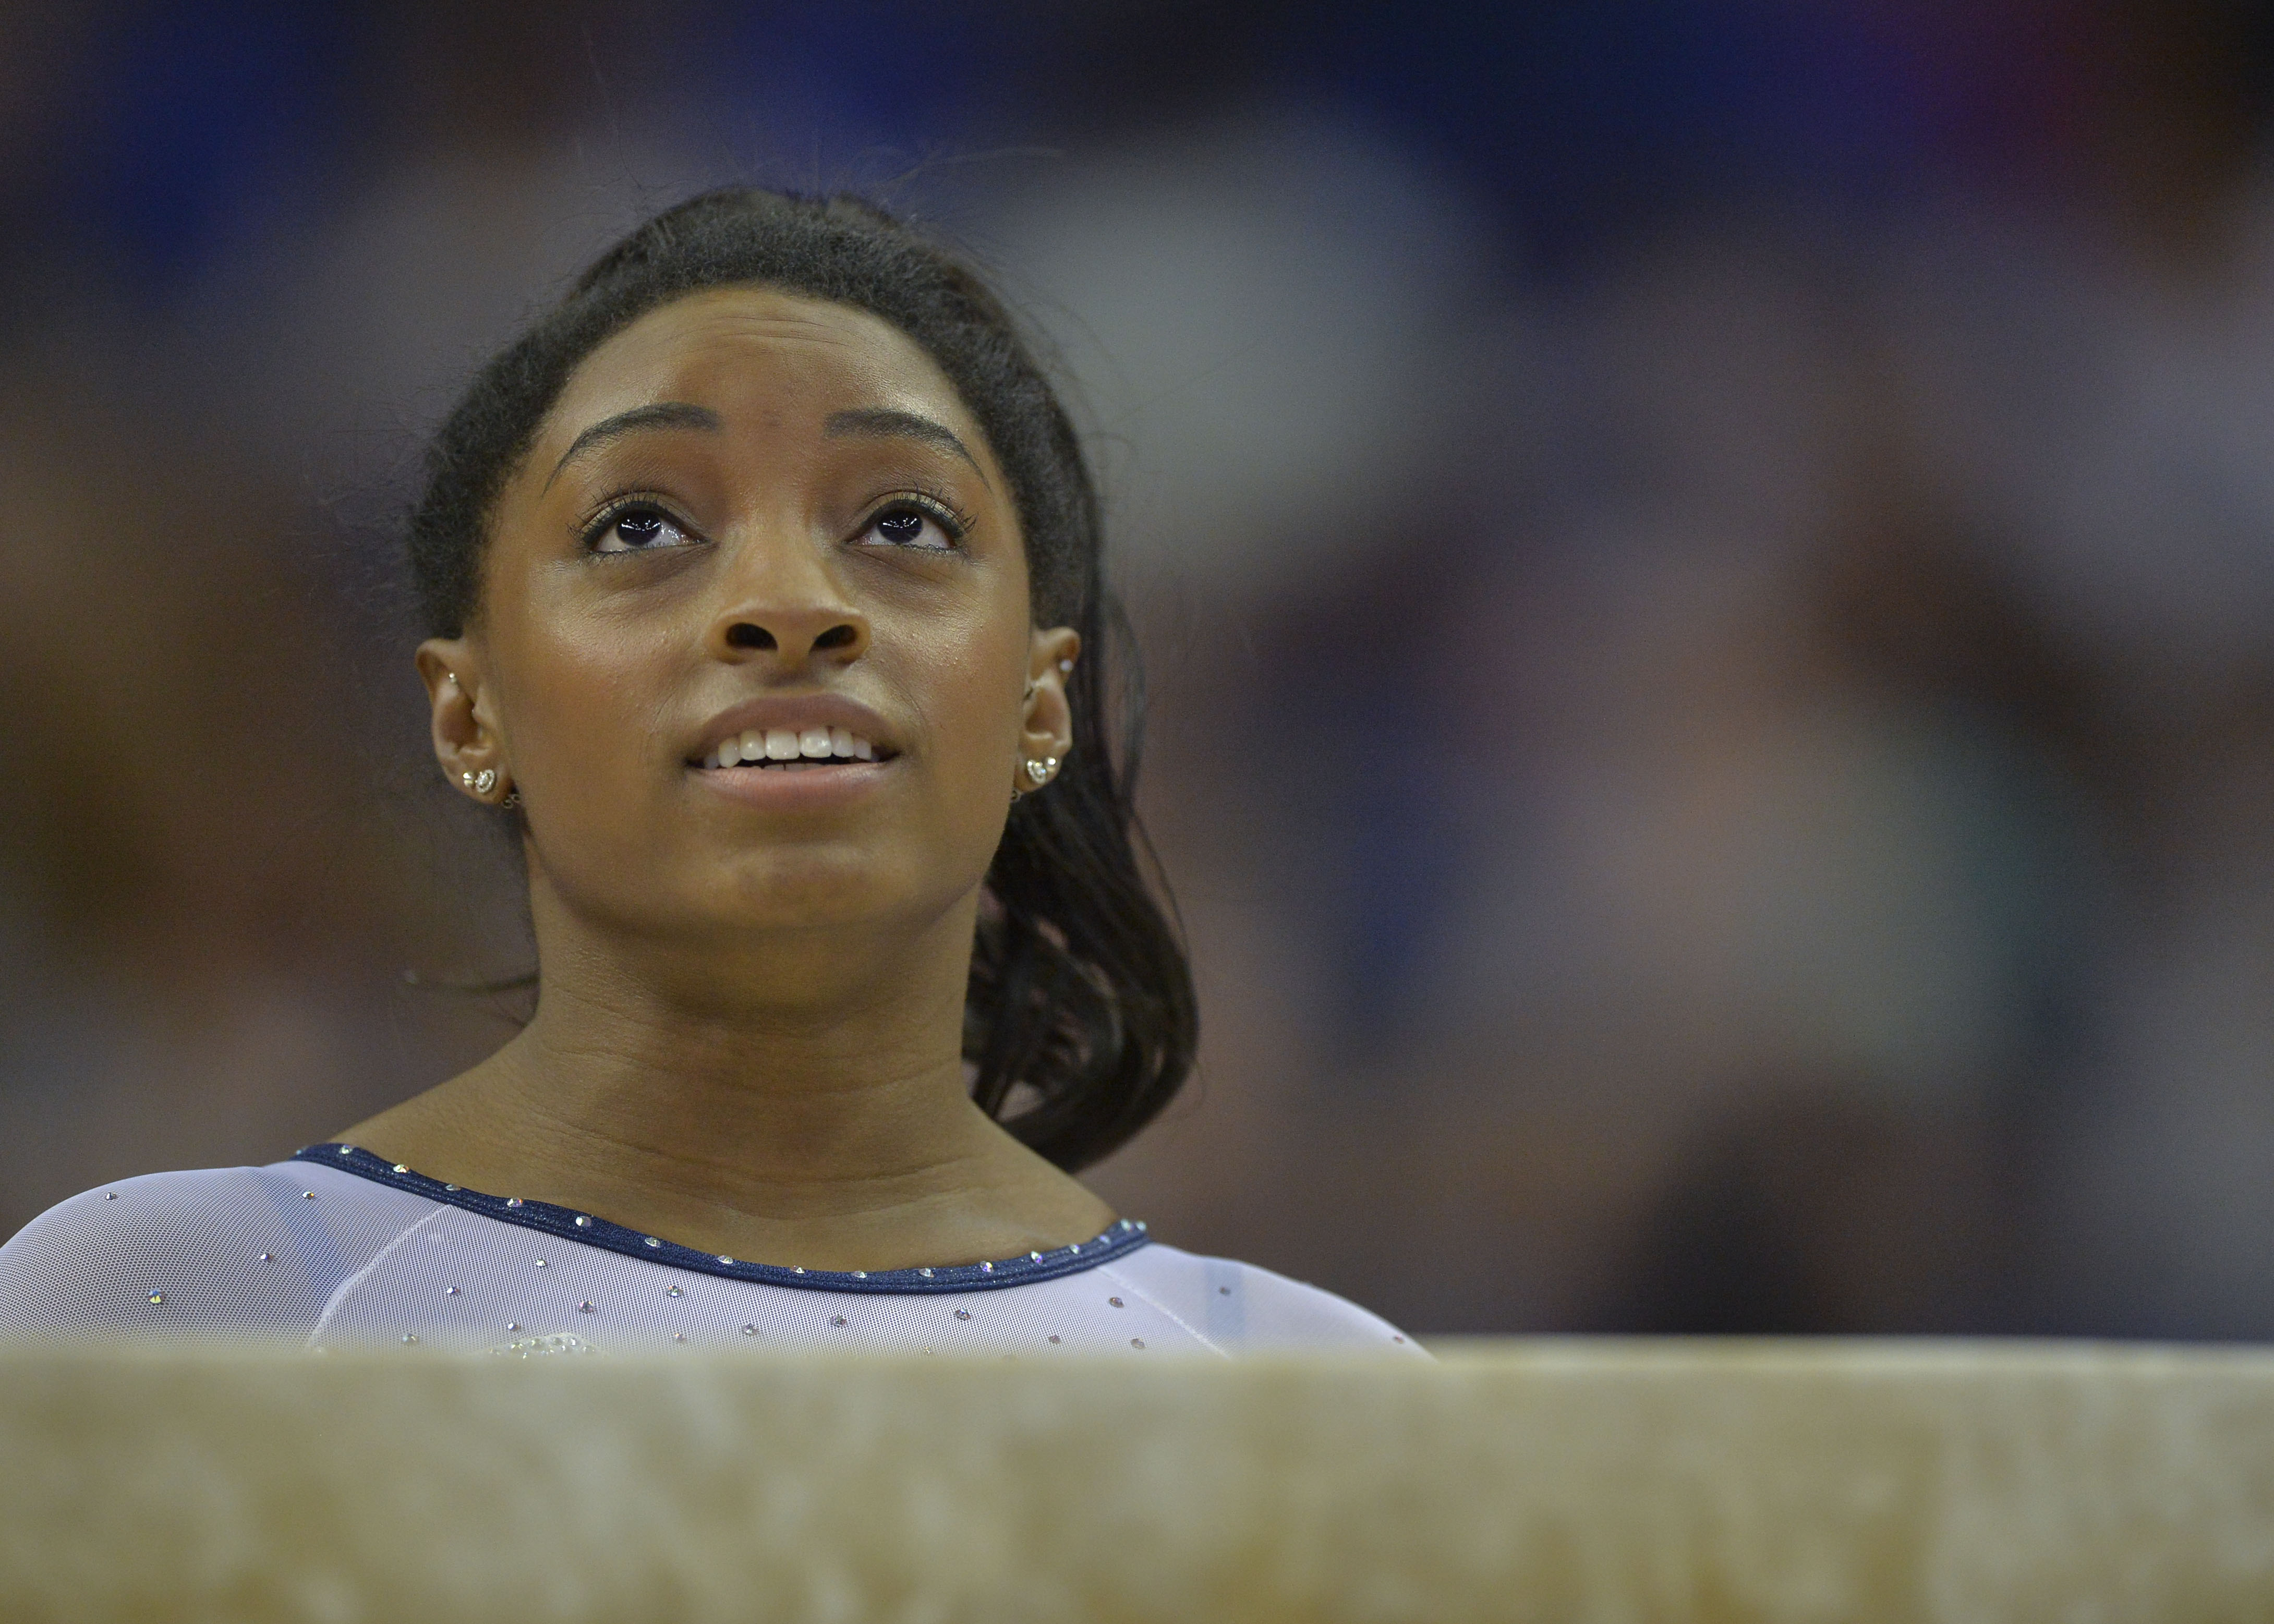 Simone Biles: Olympic gymnast slept all the time to deal